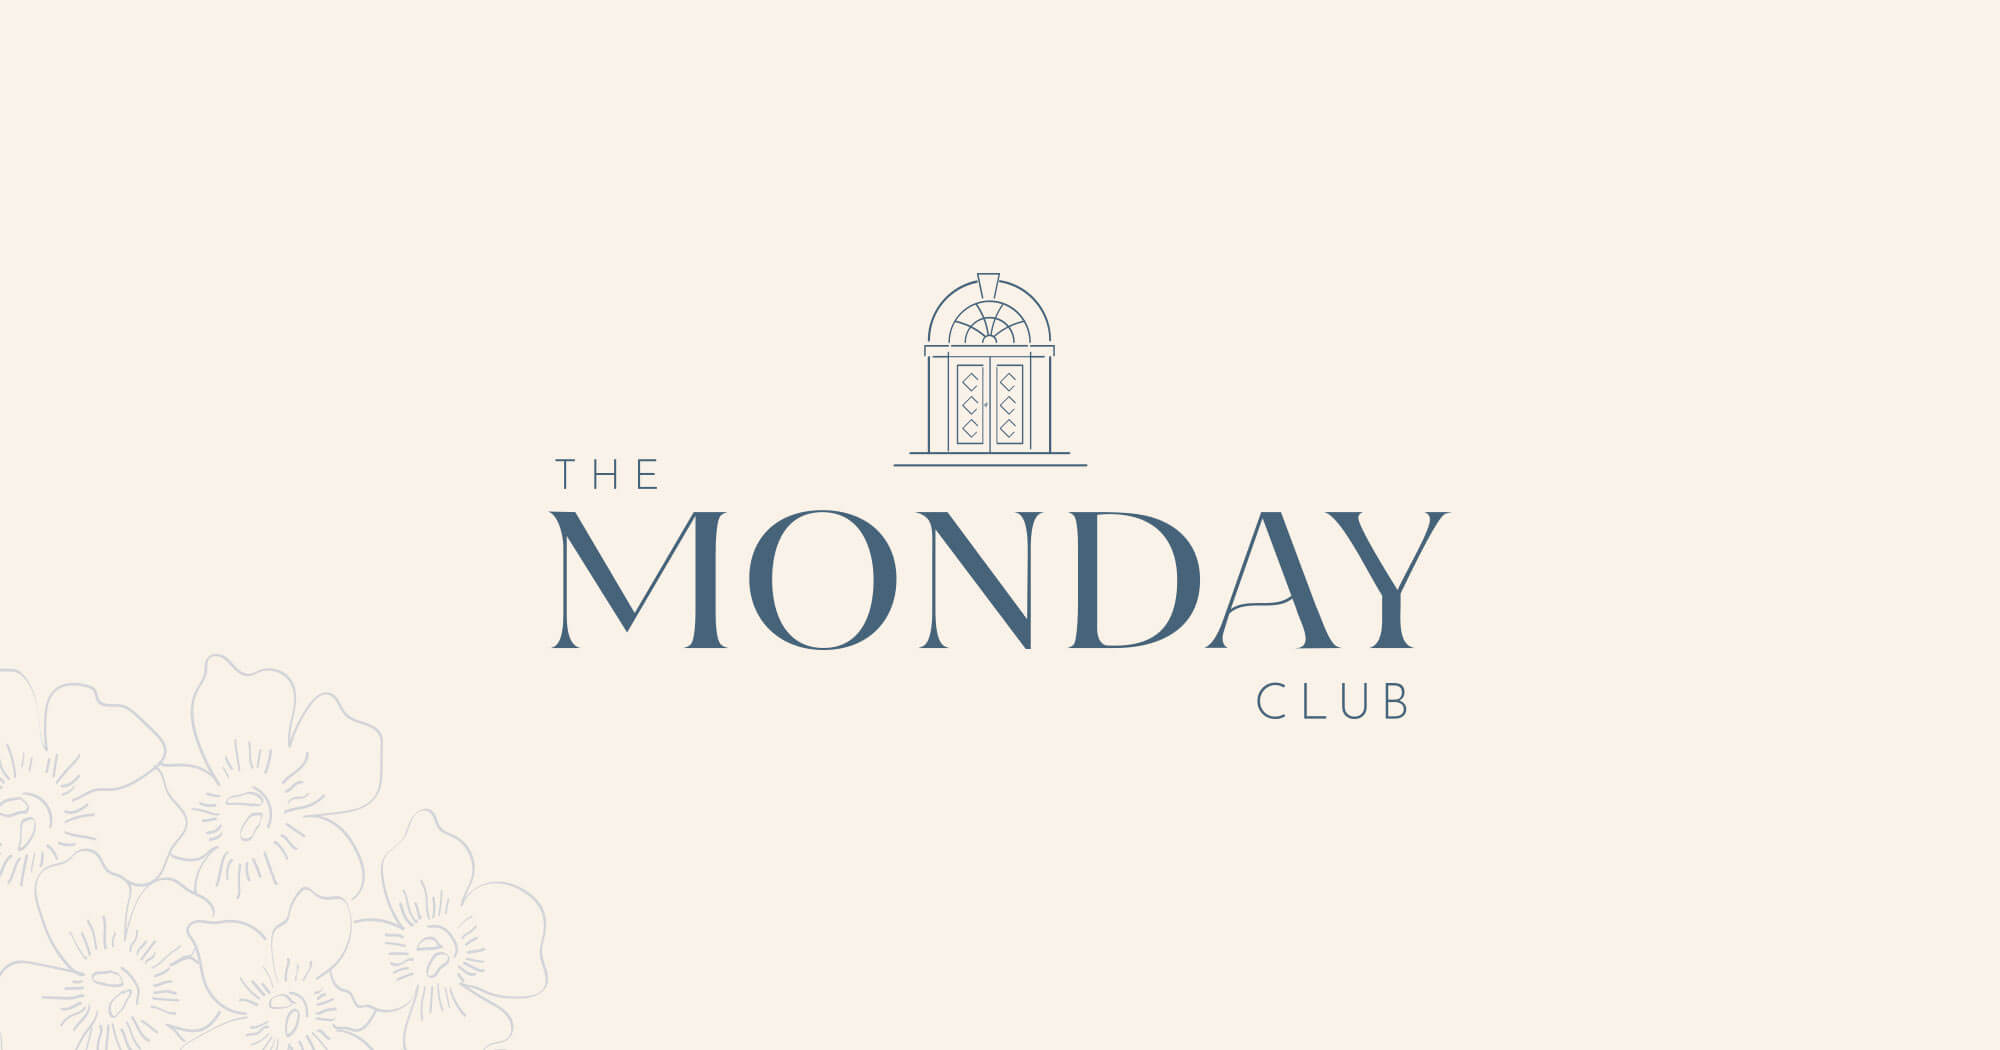 The Monday Club logo with floral pattern background